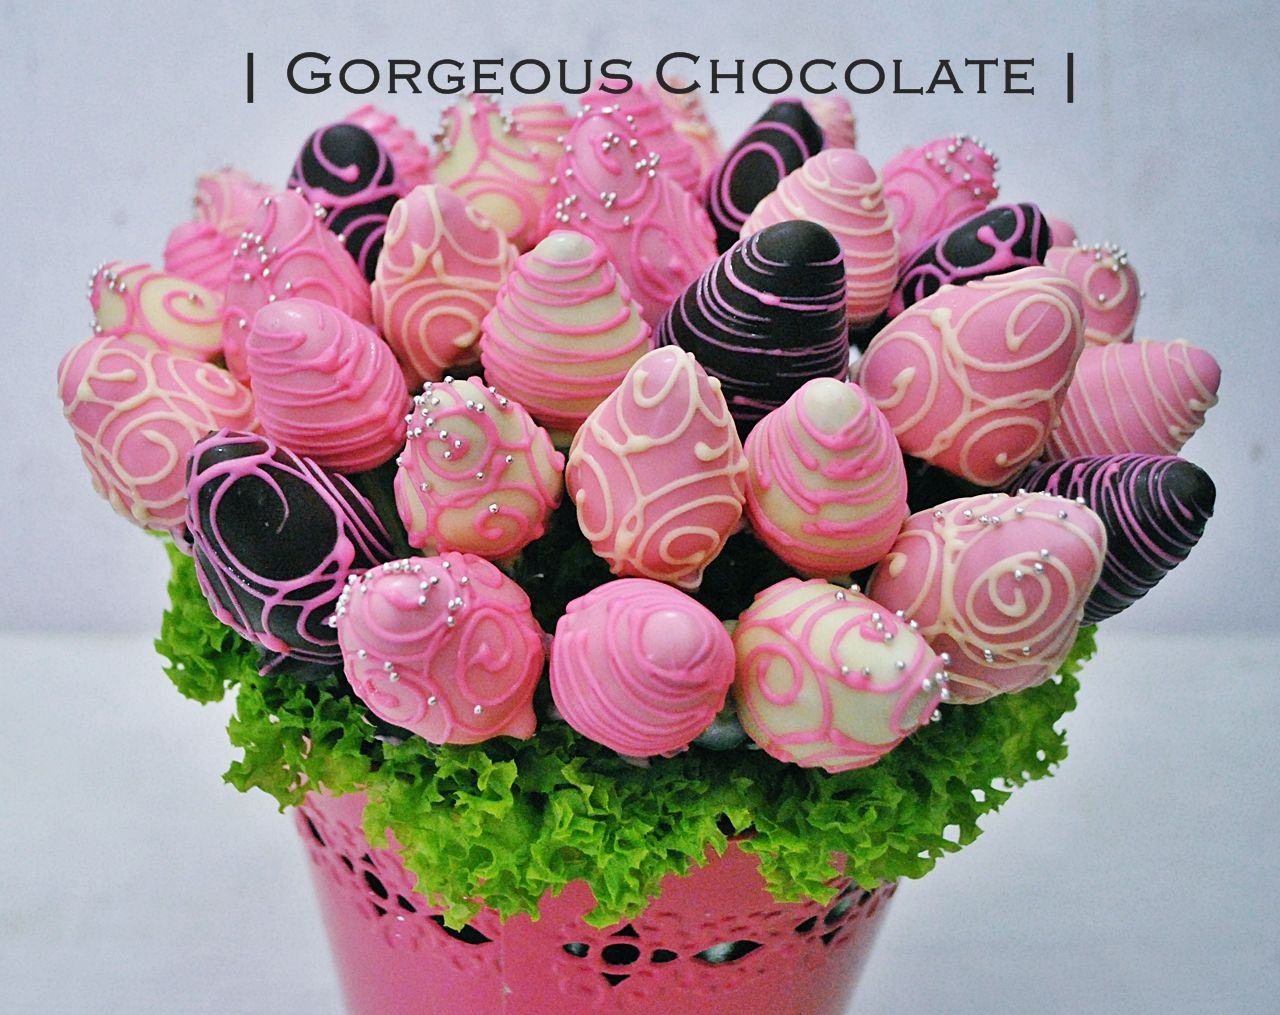 My Gorgeous Homemade Chocolate Dipped Strawberry Bouquet In Vase